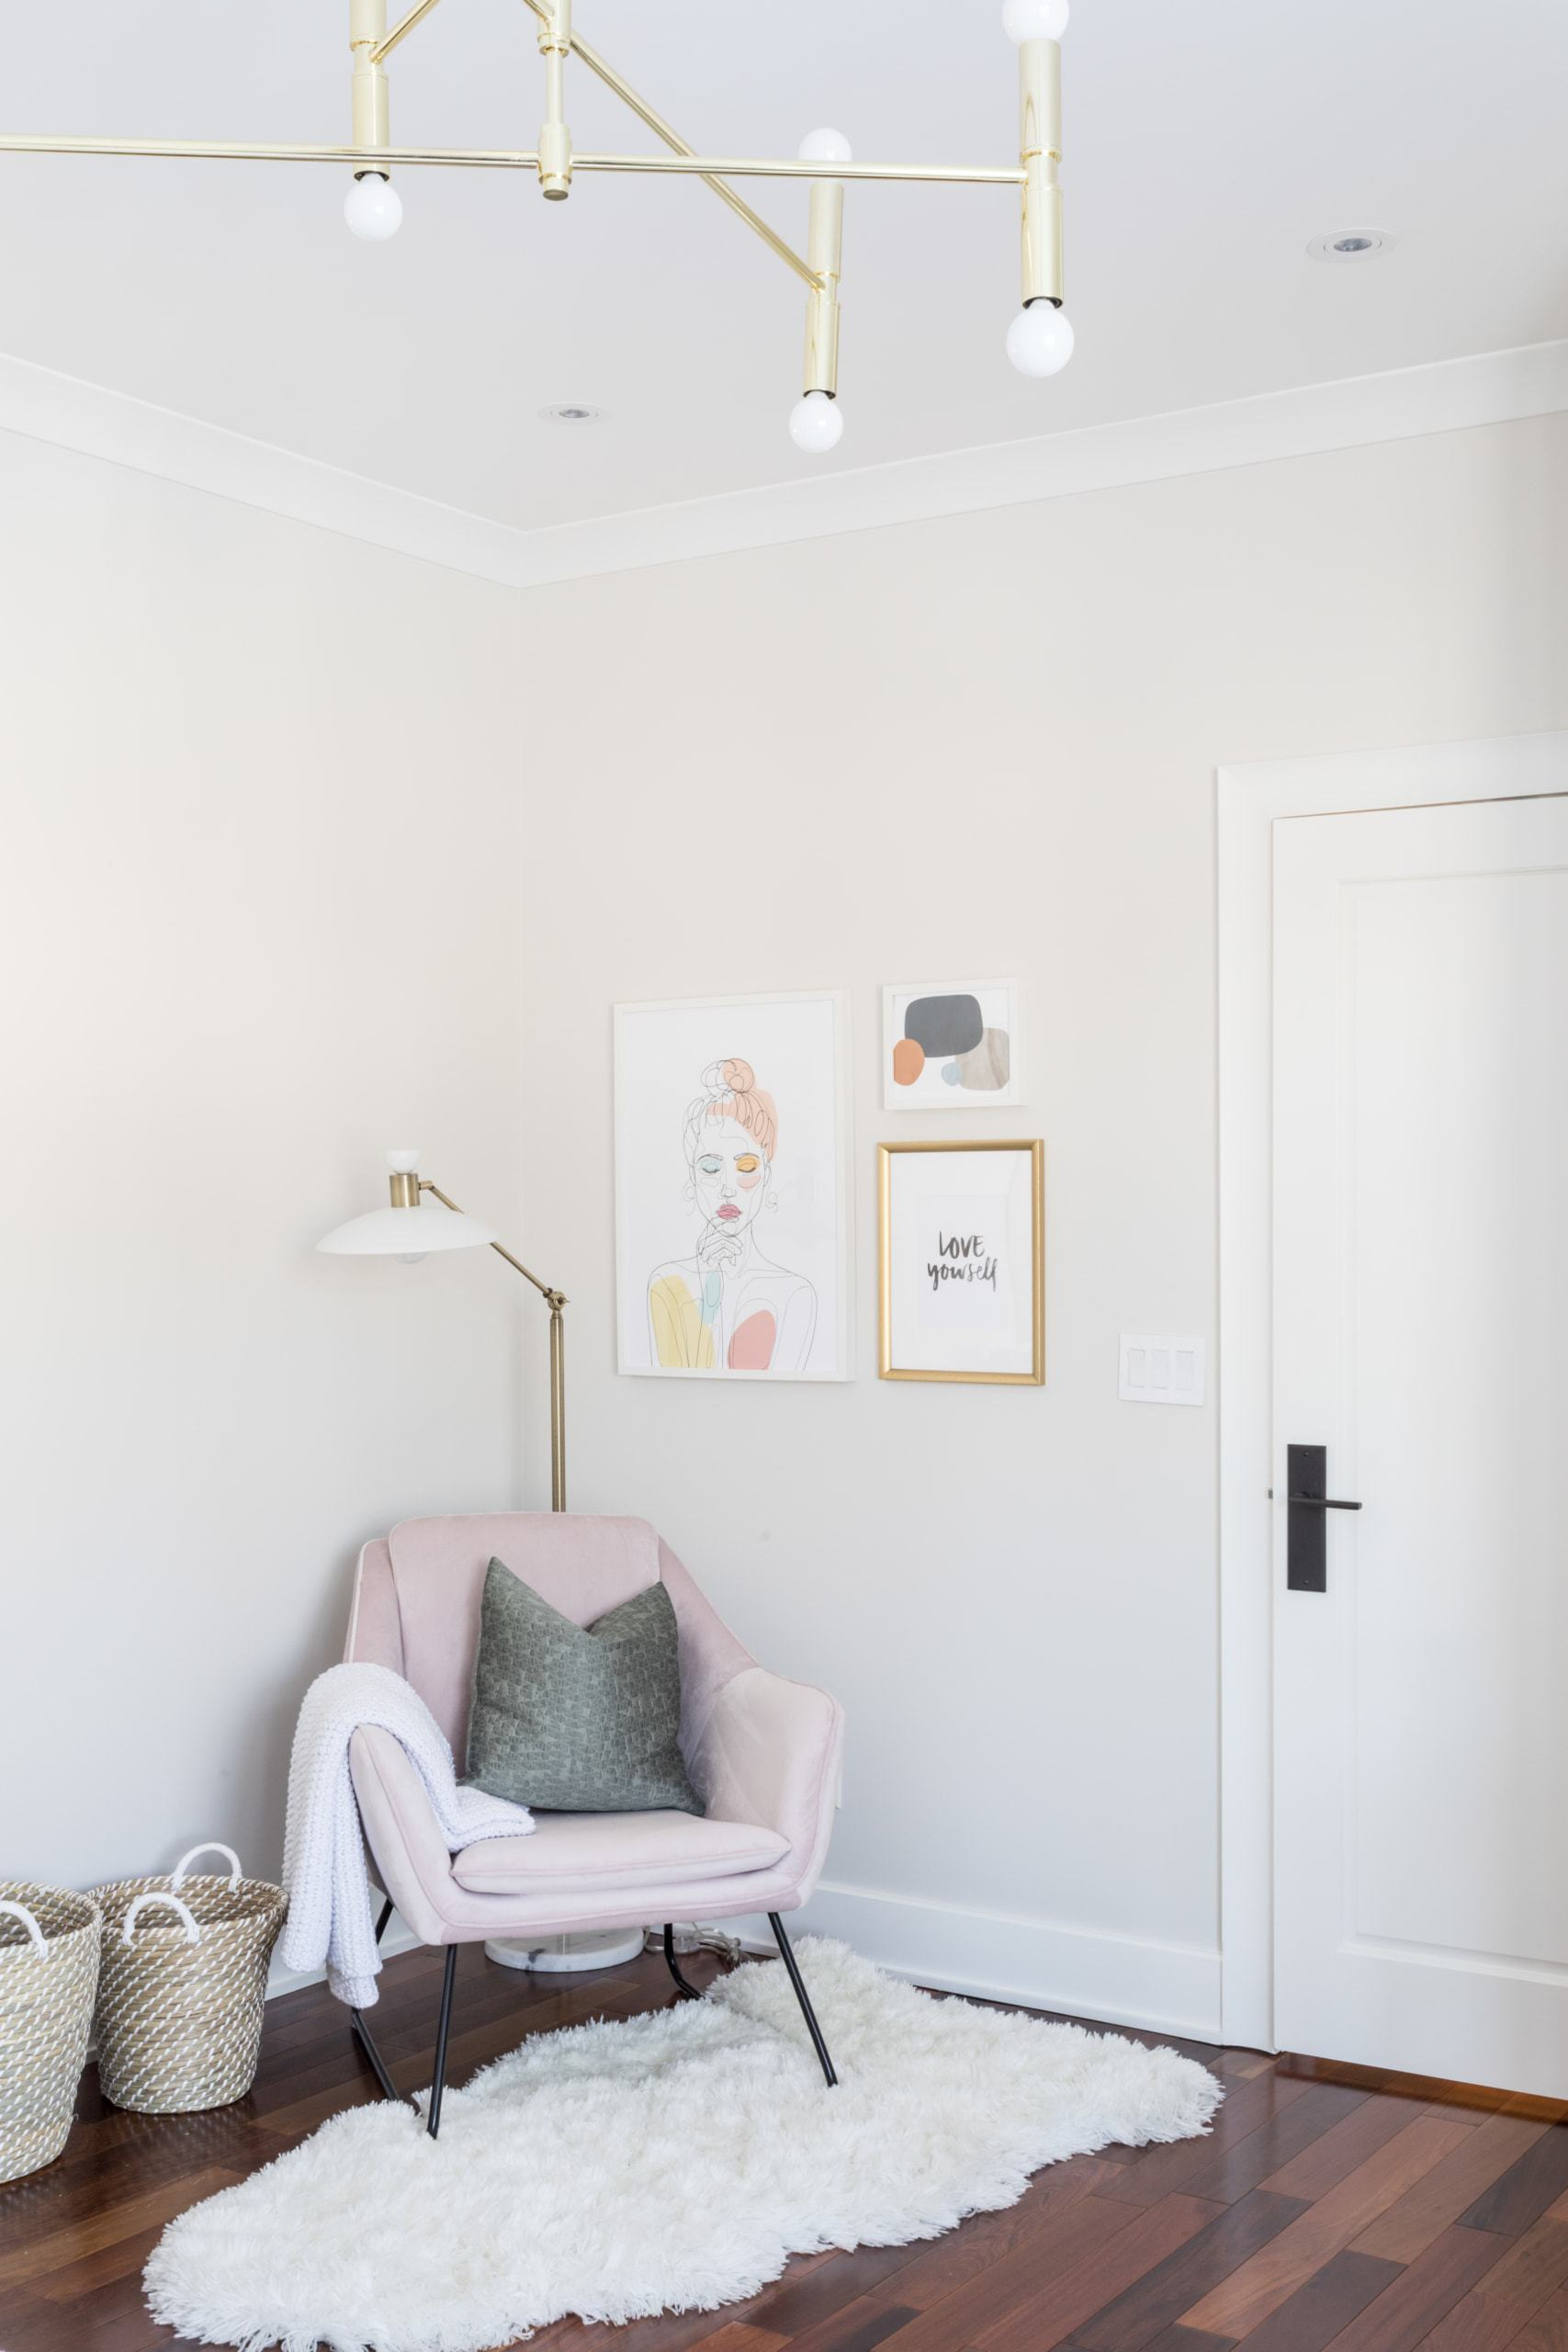 Pink chair in the corner of the room